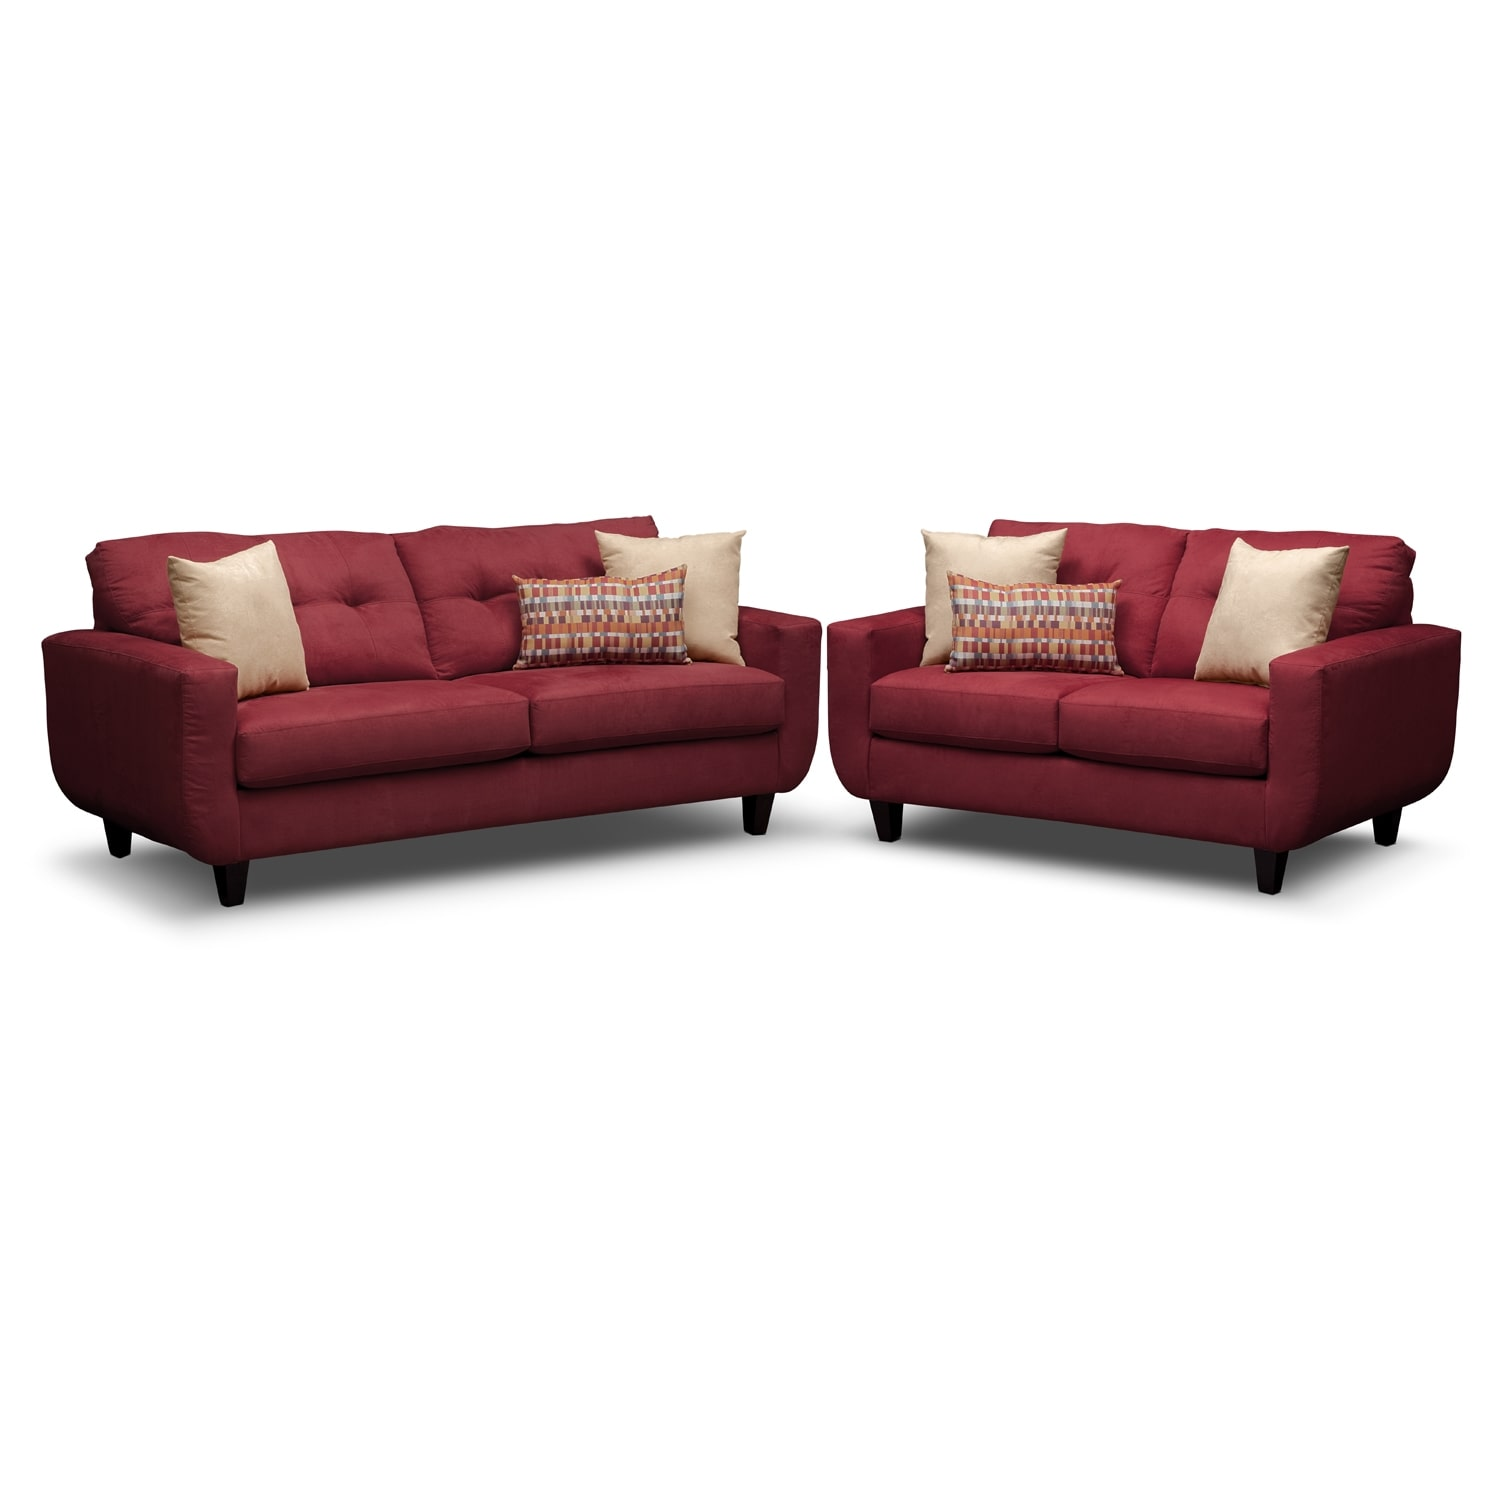 [West Village Red 2 Pc. Living Room]